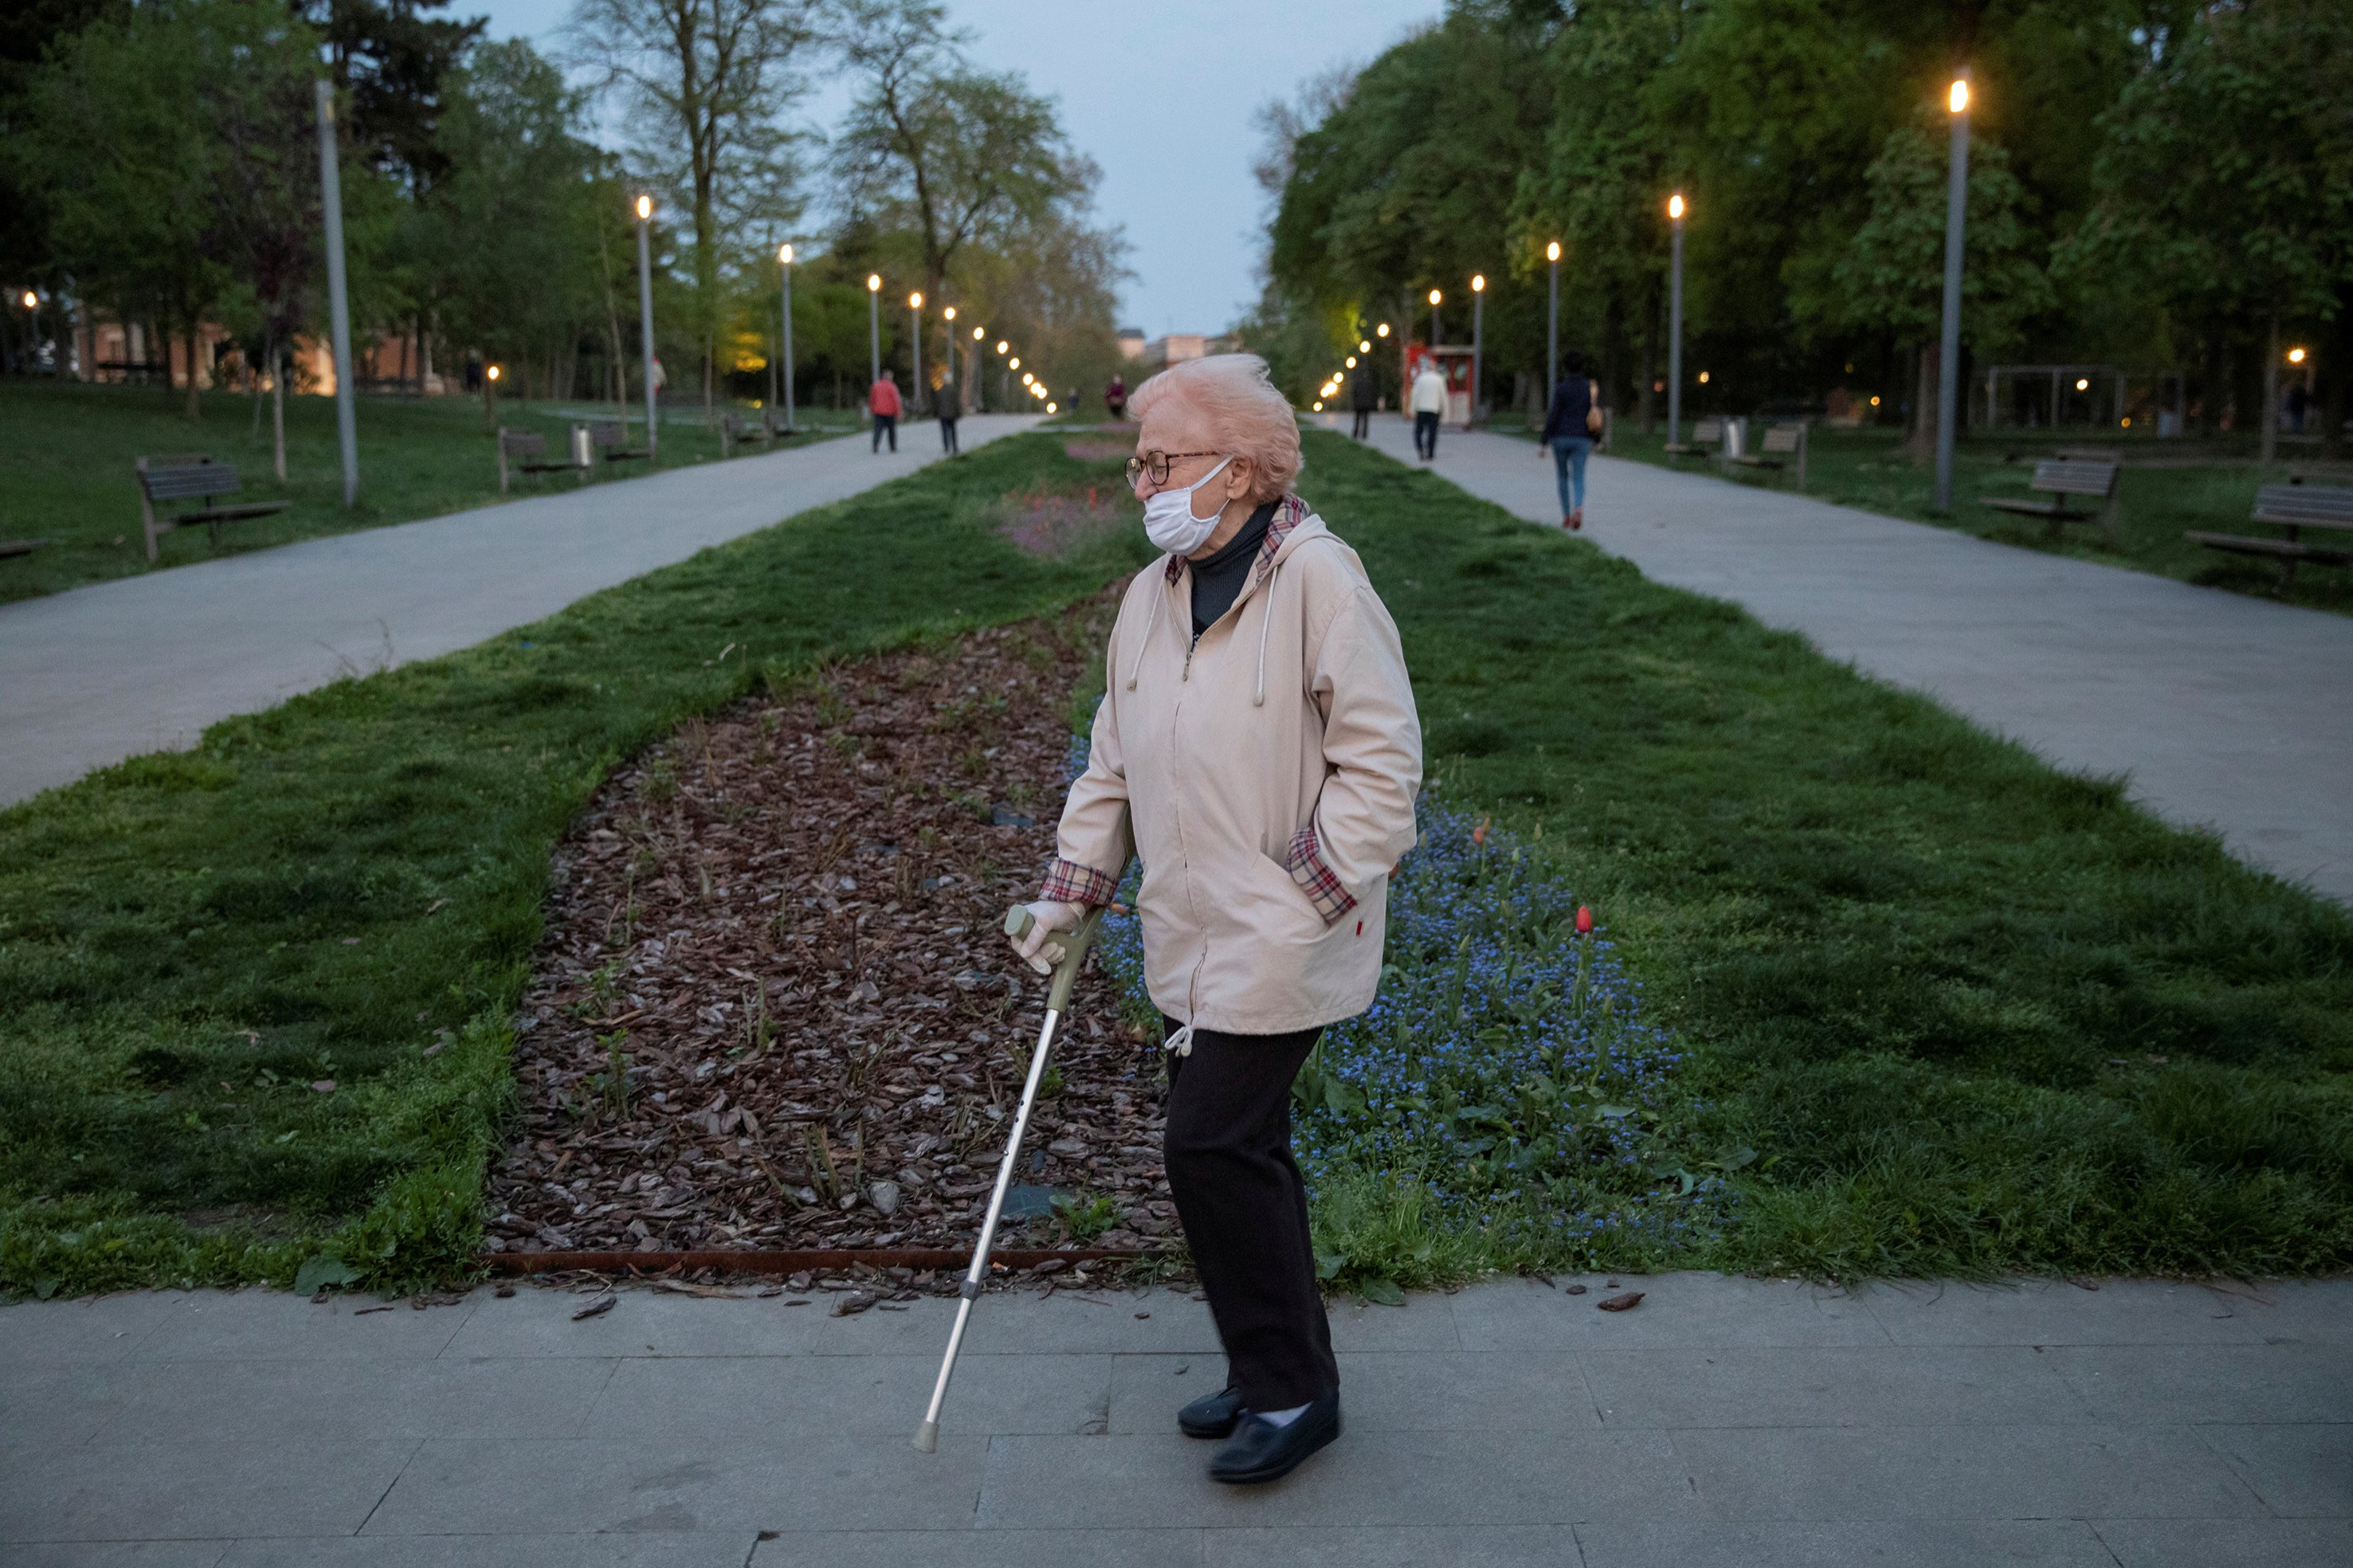 An elderly woman walks in a park during a curfew imposed to prevent the spread of coronavirus disease (COVID-19) in Belgrade, Serbia, April 21, 2020. (REUTERS Photo)